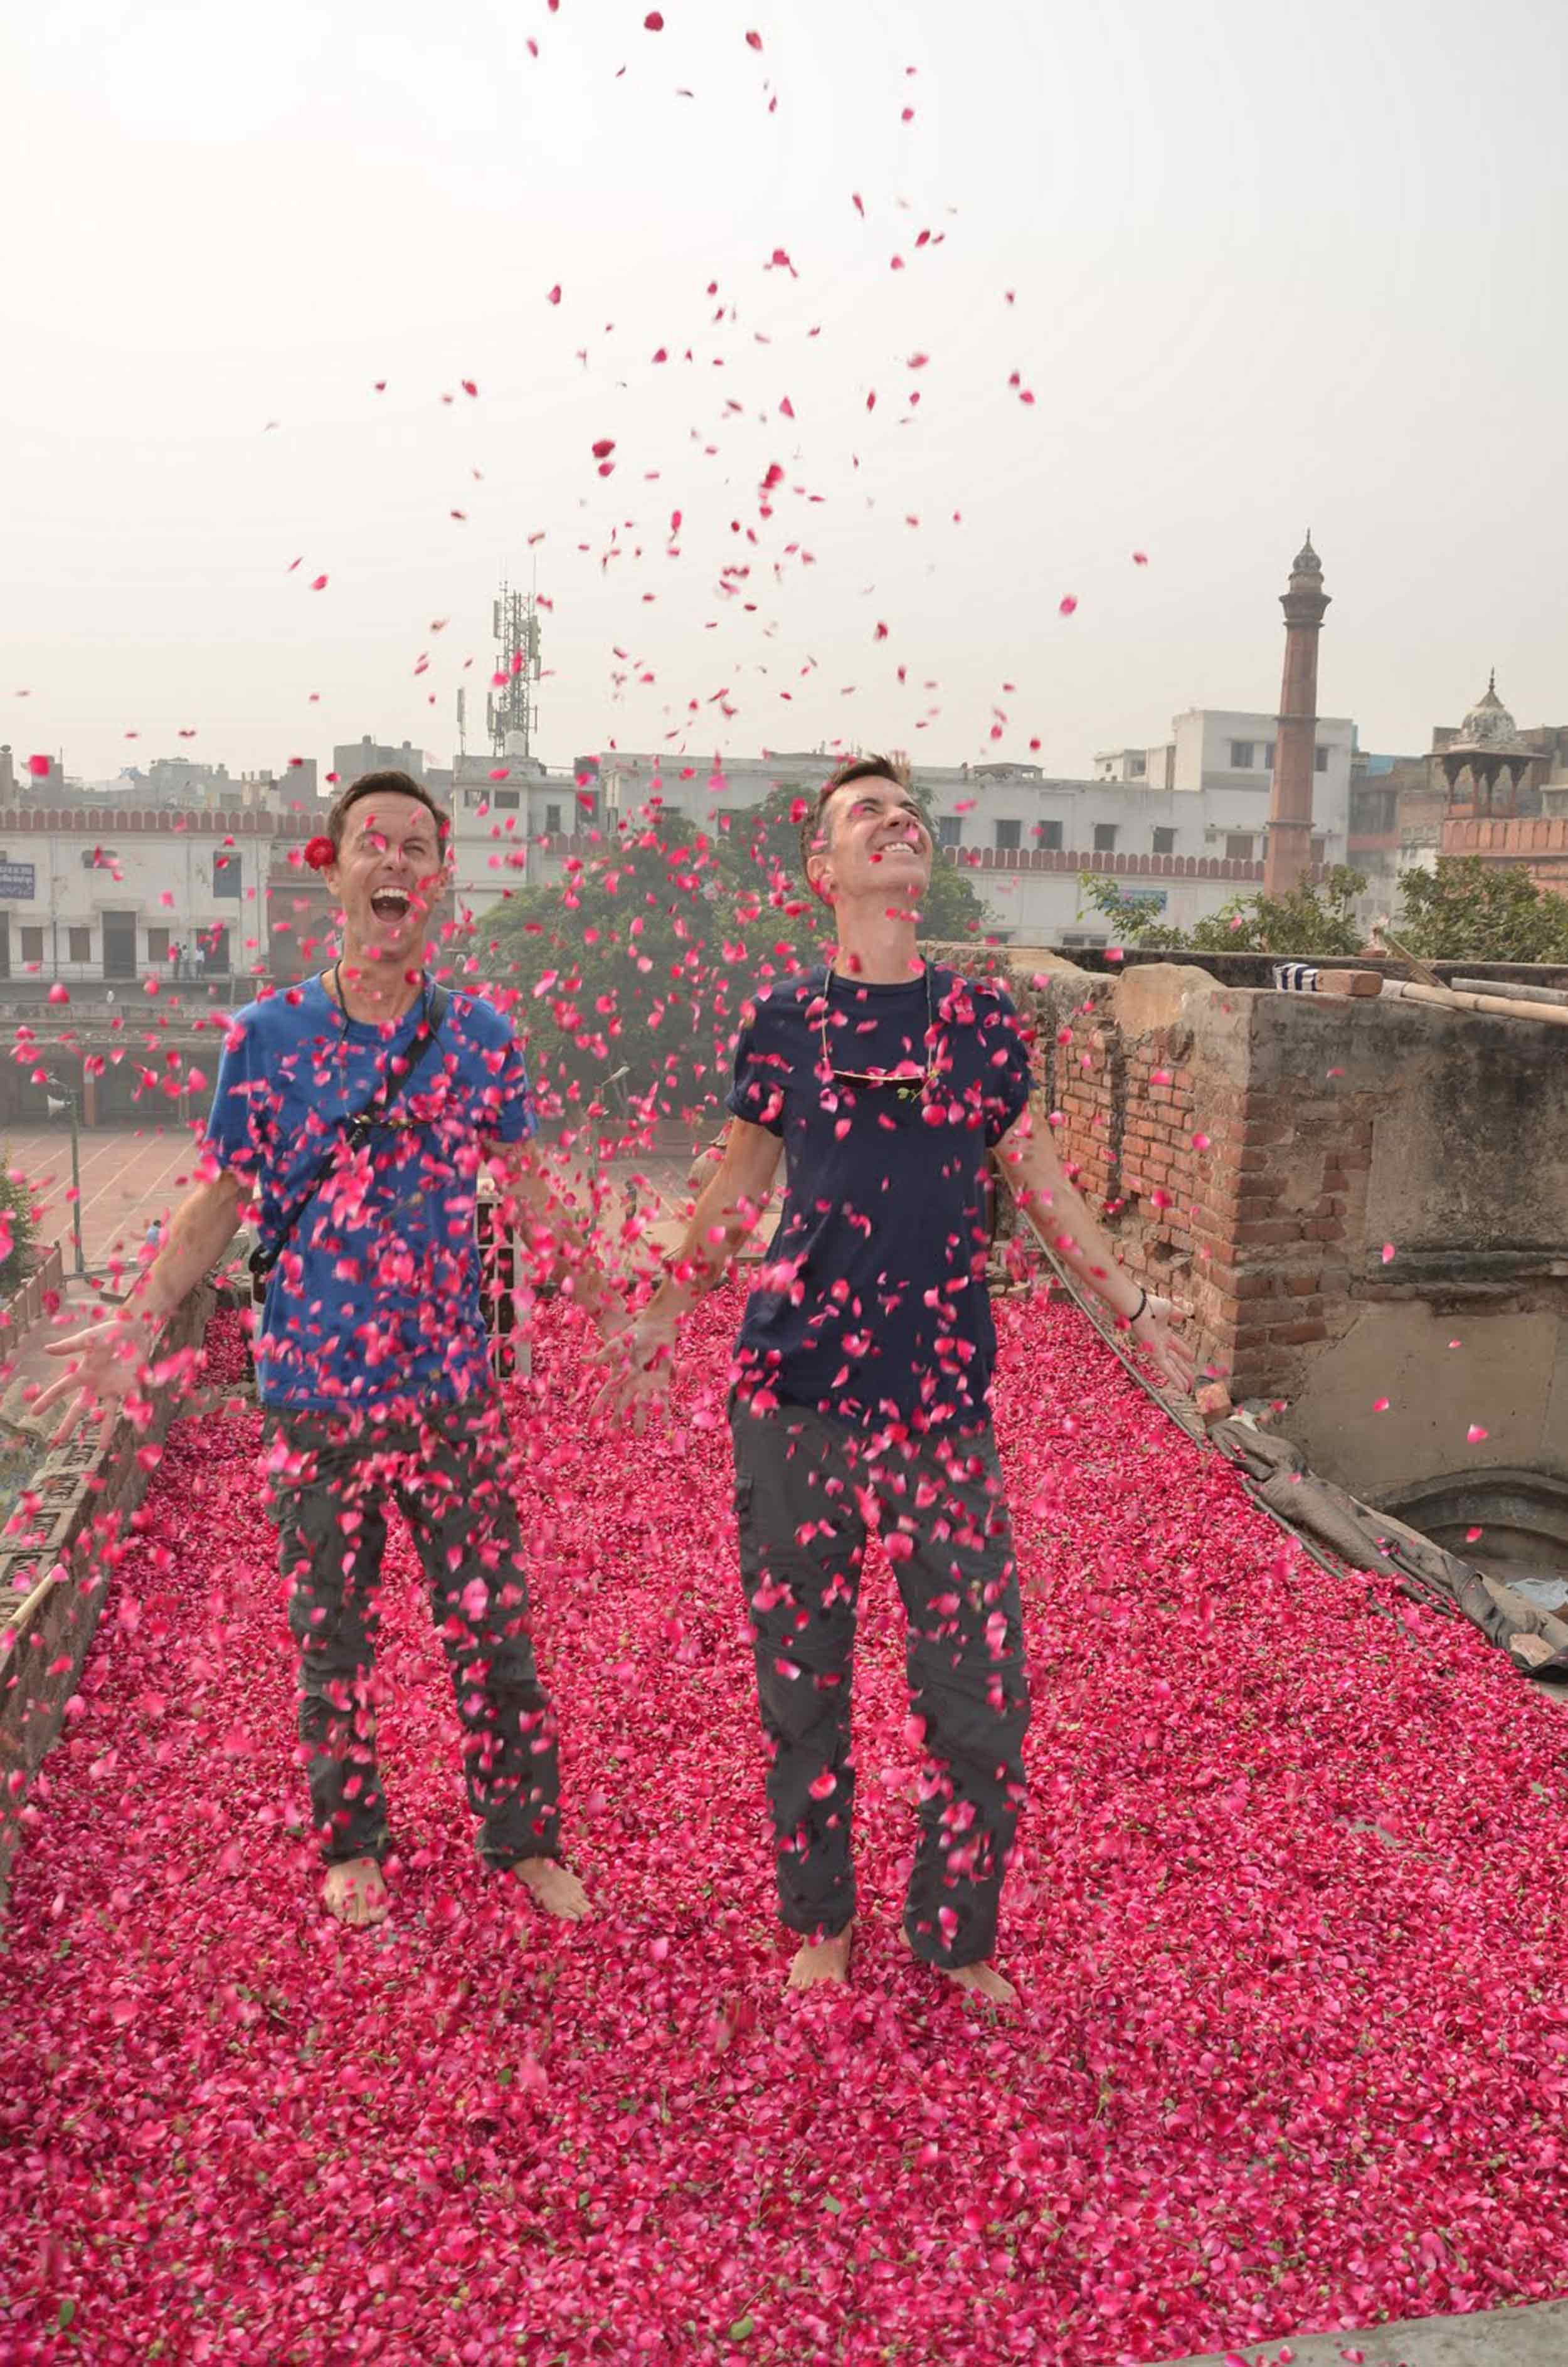 Climbing barefoot into the rose petal covered rooftop in Old Delhi was a magical moment for us both.